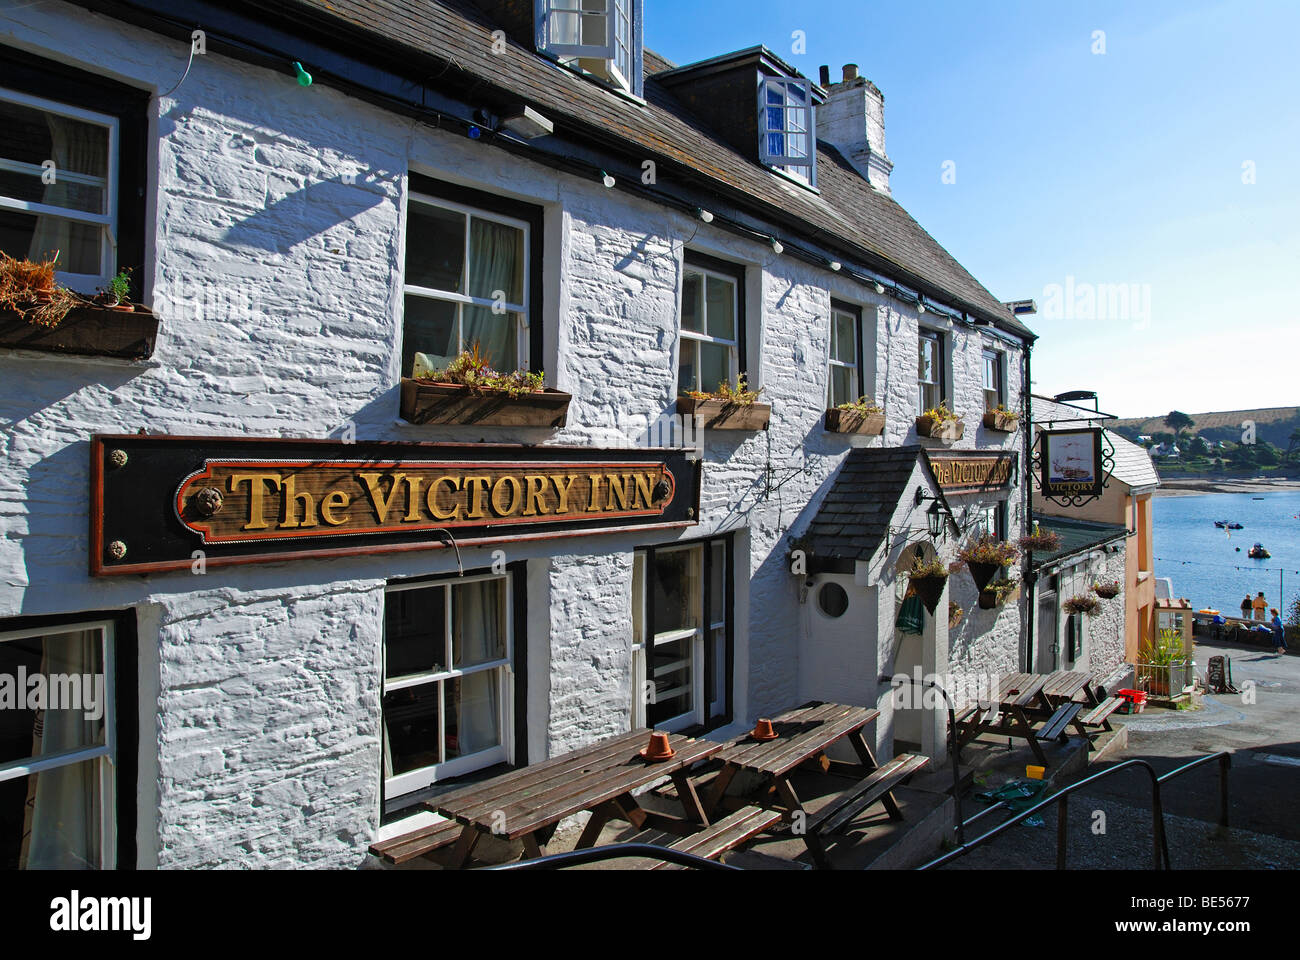 the victory inn at st.mawes in cornwall, uk - Stock Image